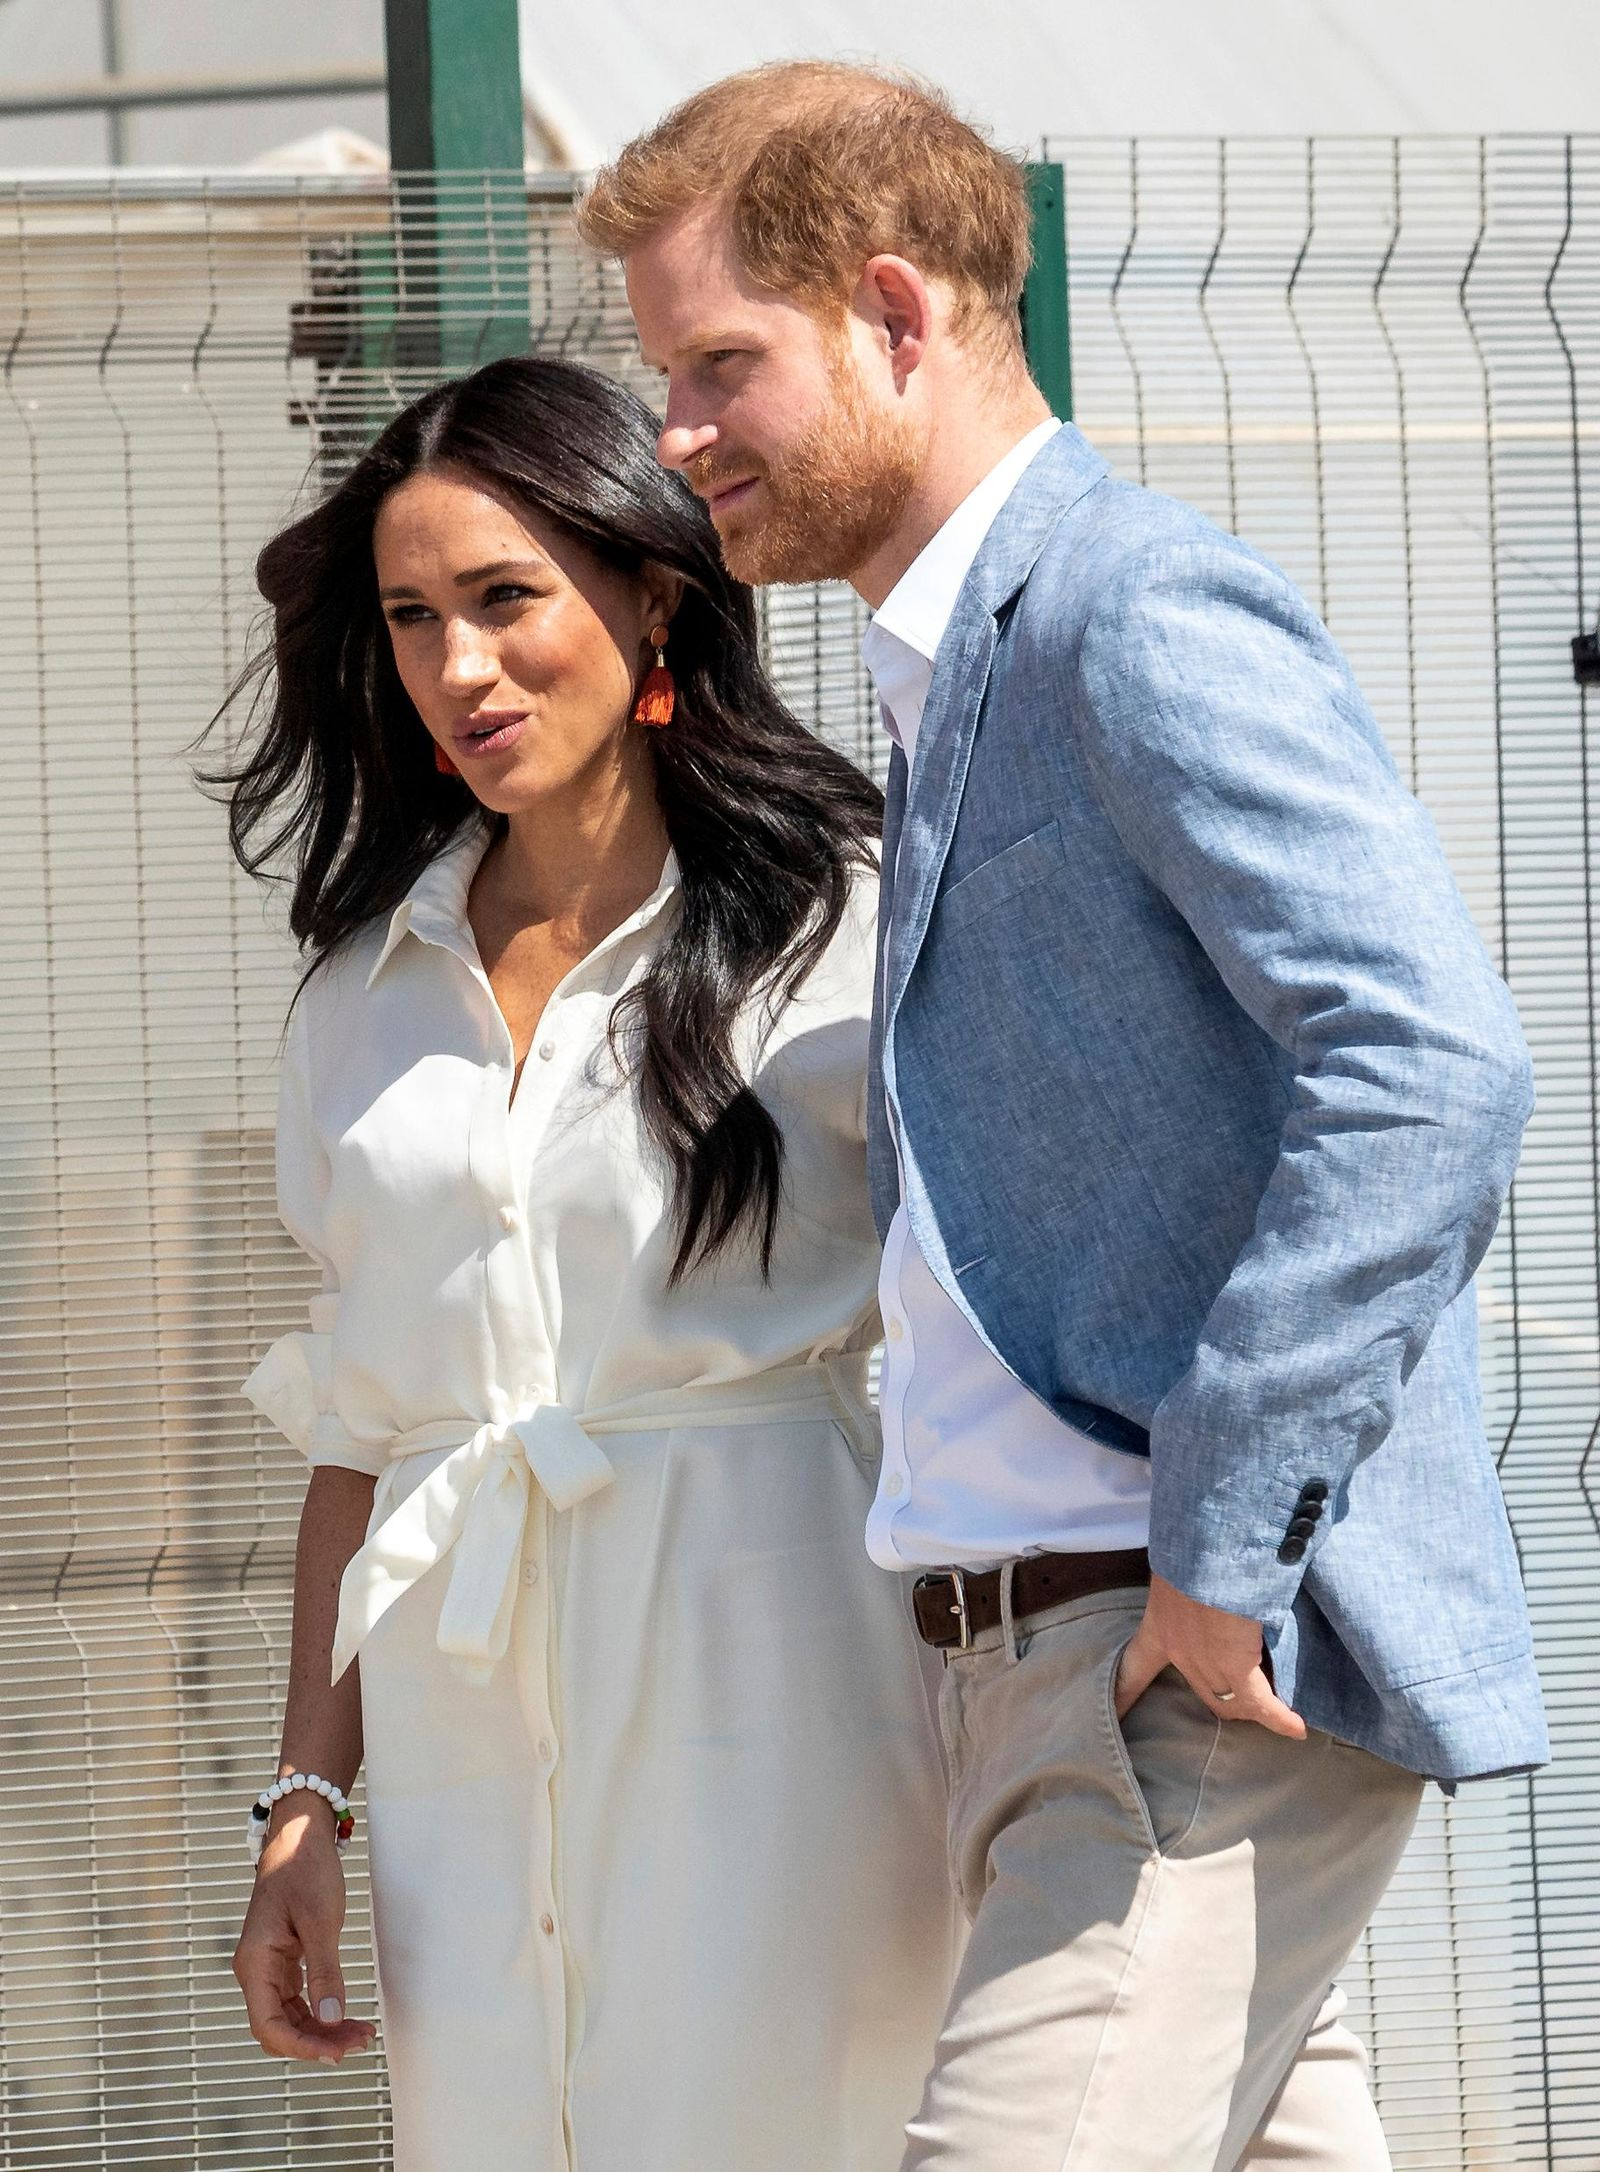 Britain's Prince Harry and Meghan, Duchess of Sussex visit a Youth Employment Services Hub in Makhulong, Tembisa, a township near Johannesburg, South Africa, Wednesday, Oct. 2, 2019. (AP Photo/Christiaan Kotze)